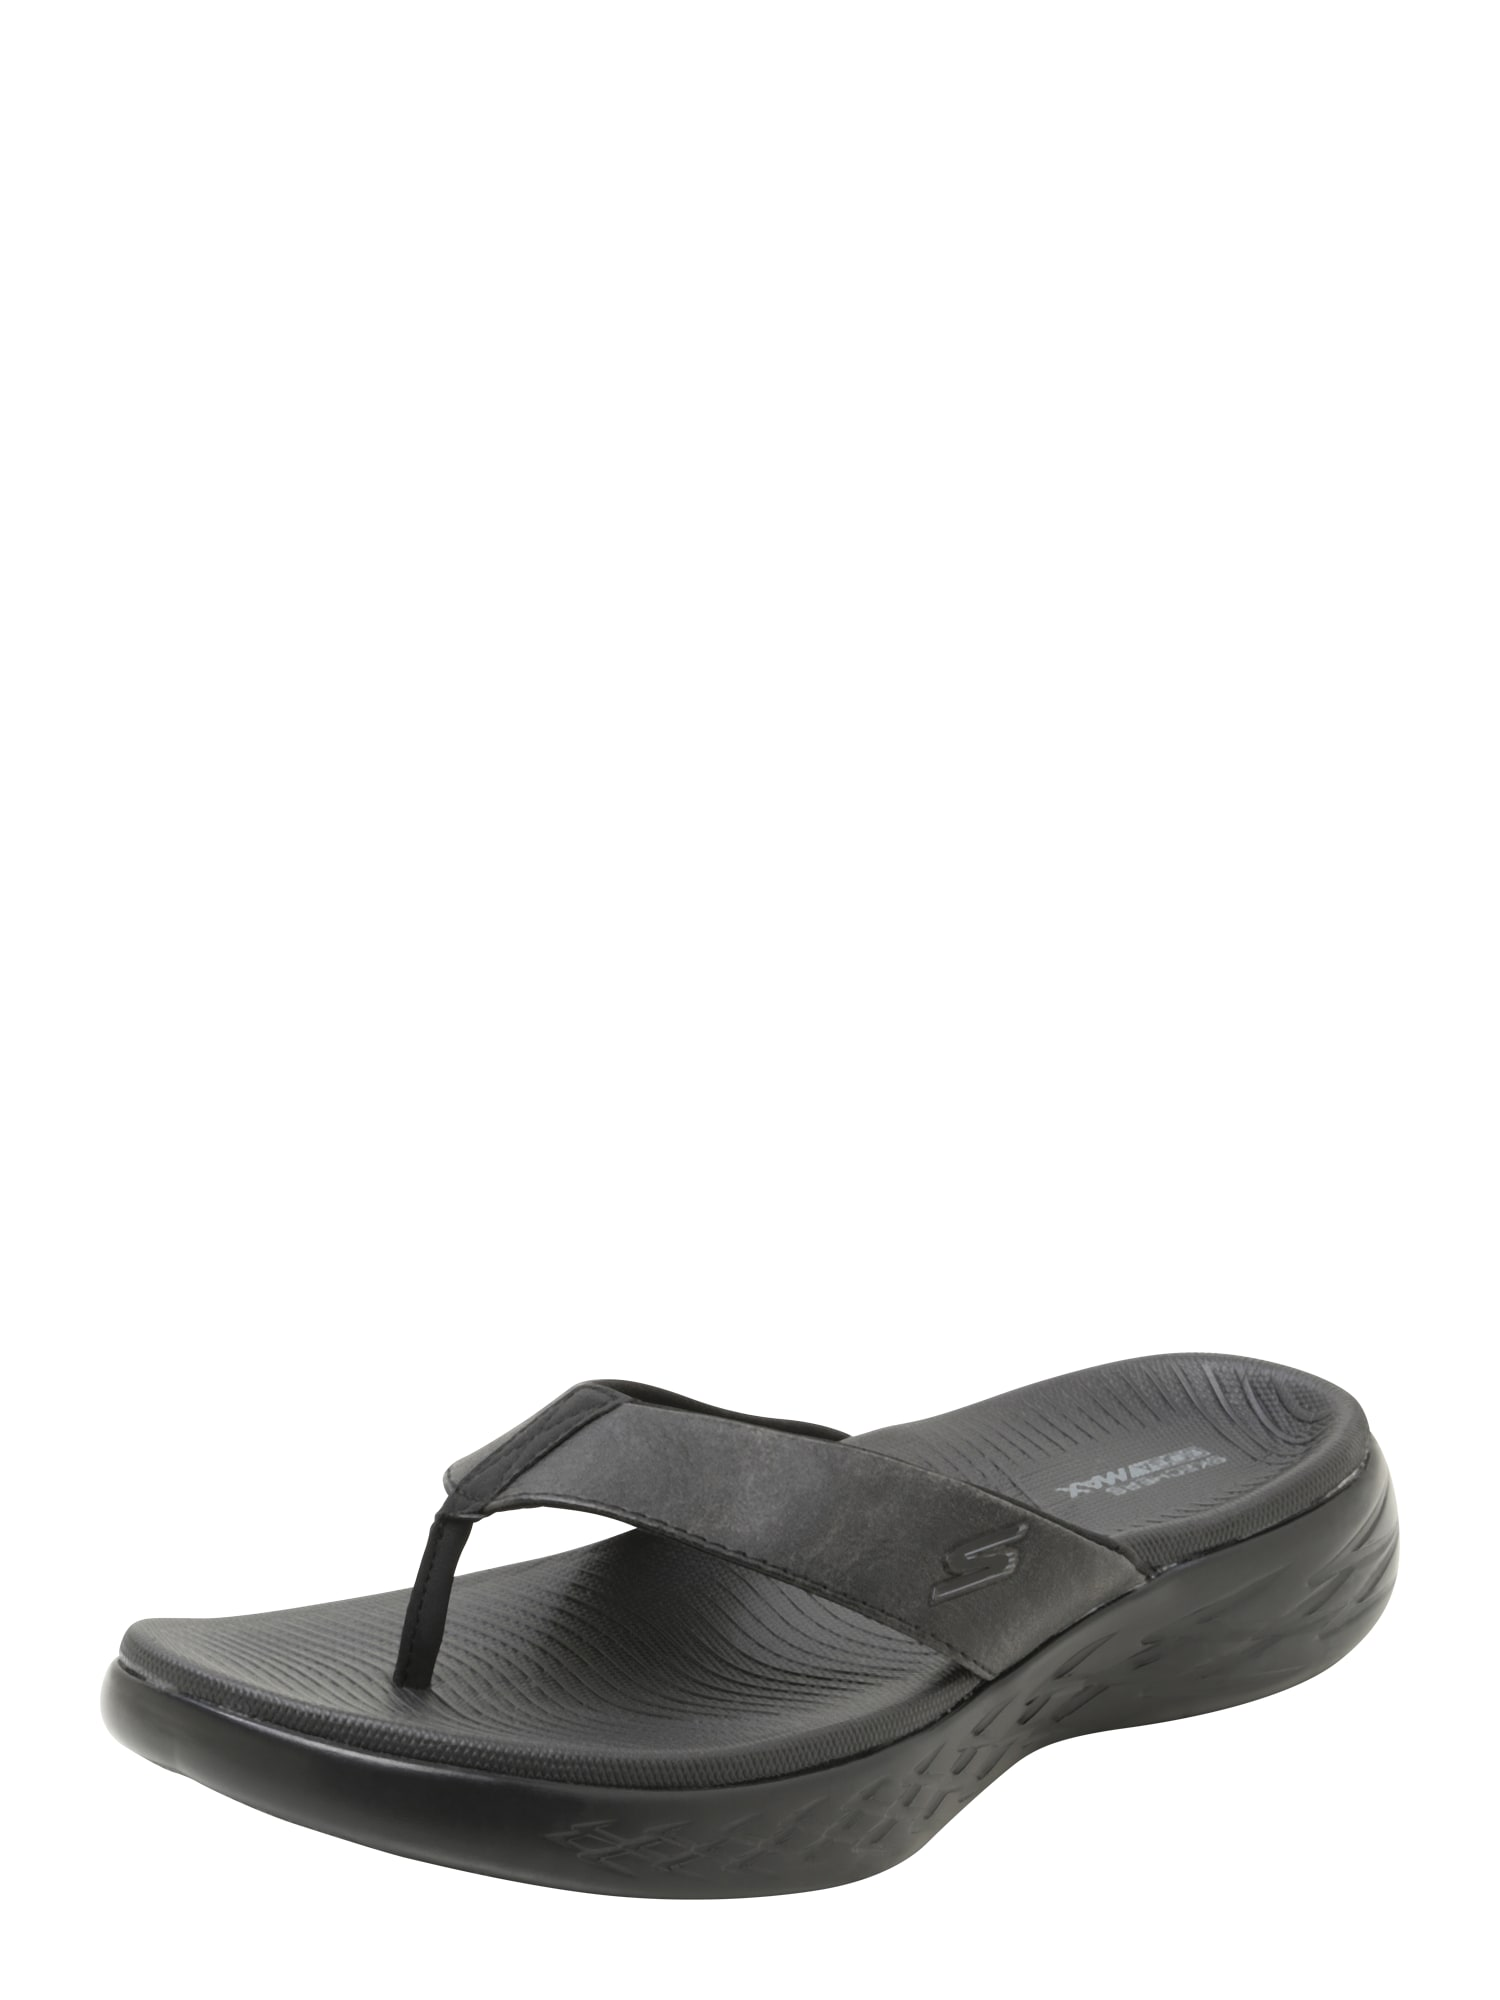 Žabky 3 Point Perform Tex Sandal Molded Footbed černá SKECHERS